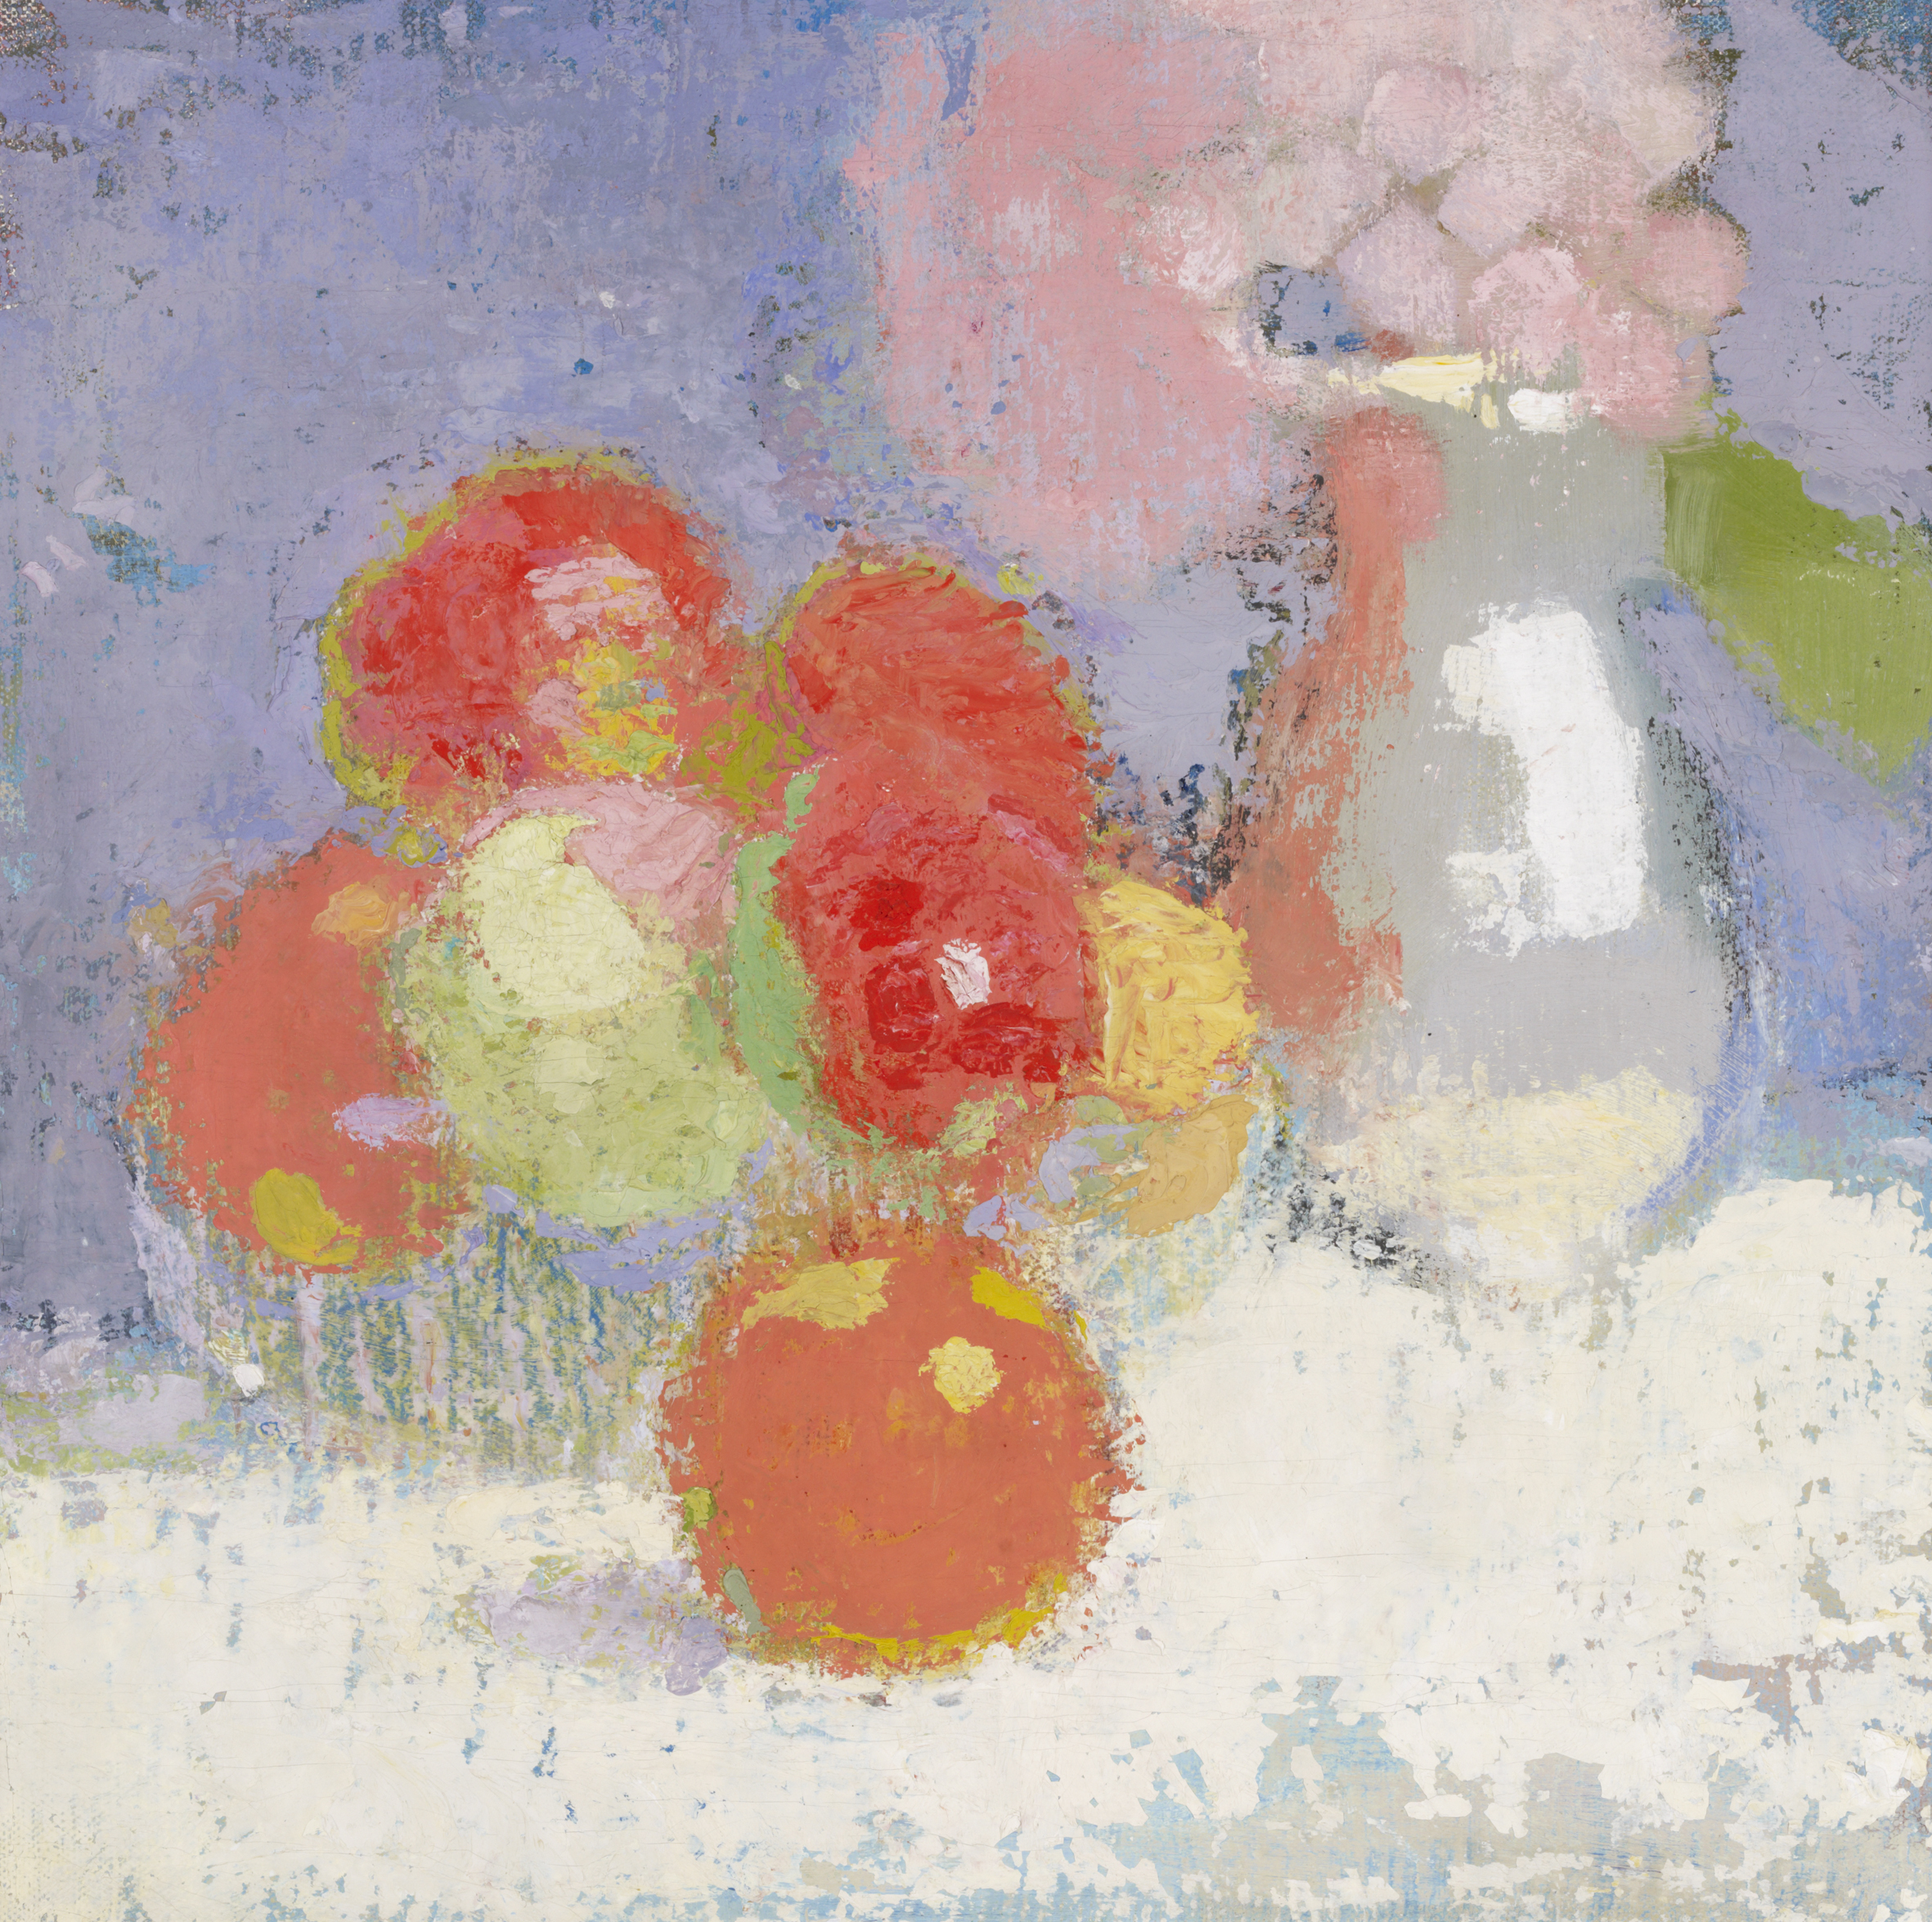 Helene Schjerfbeck, Red Apples, 1915 (Ateneum, Finnish National Gallery)